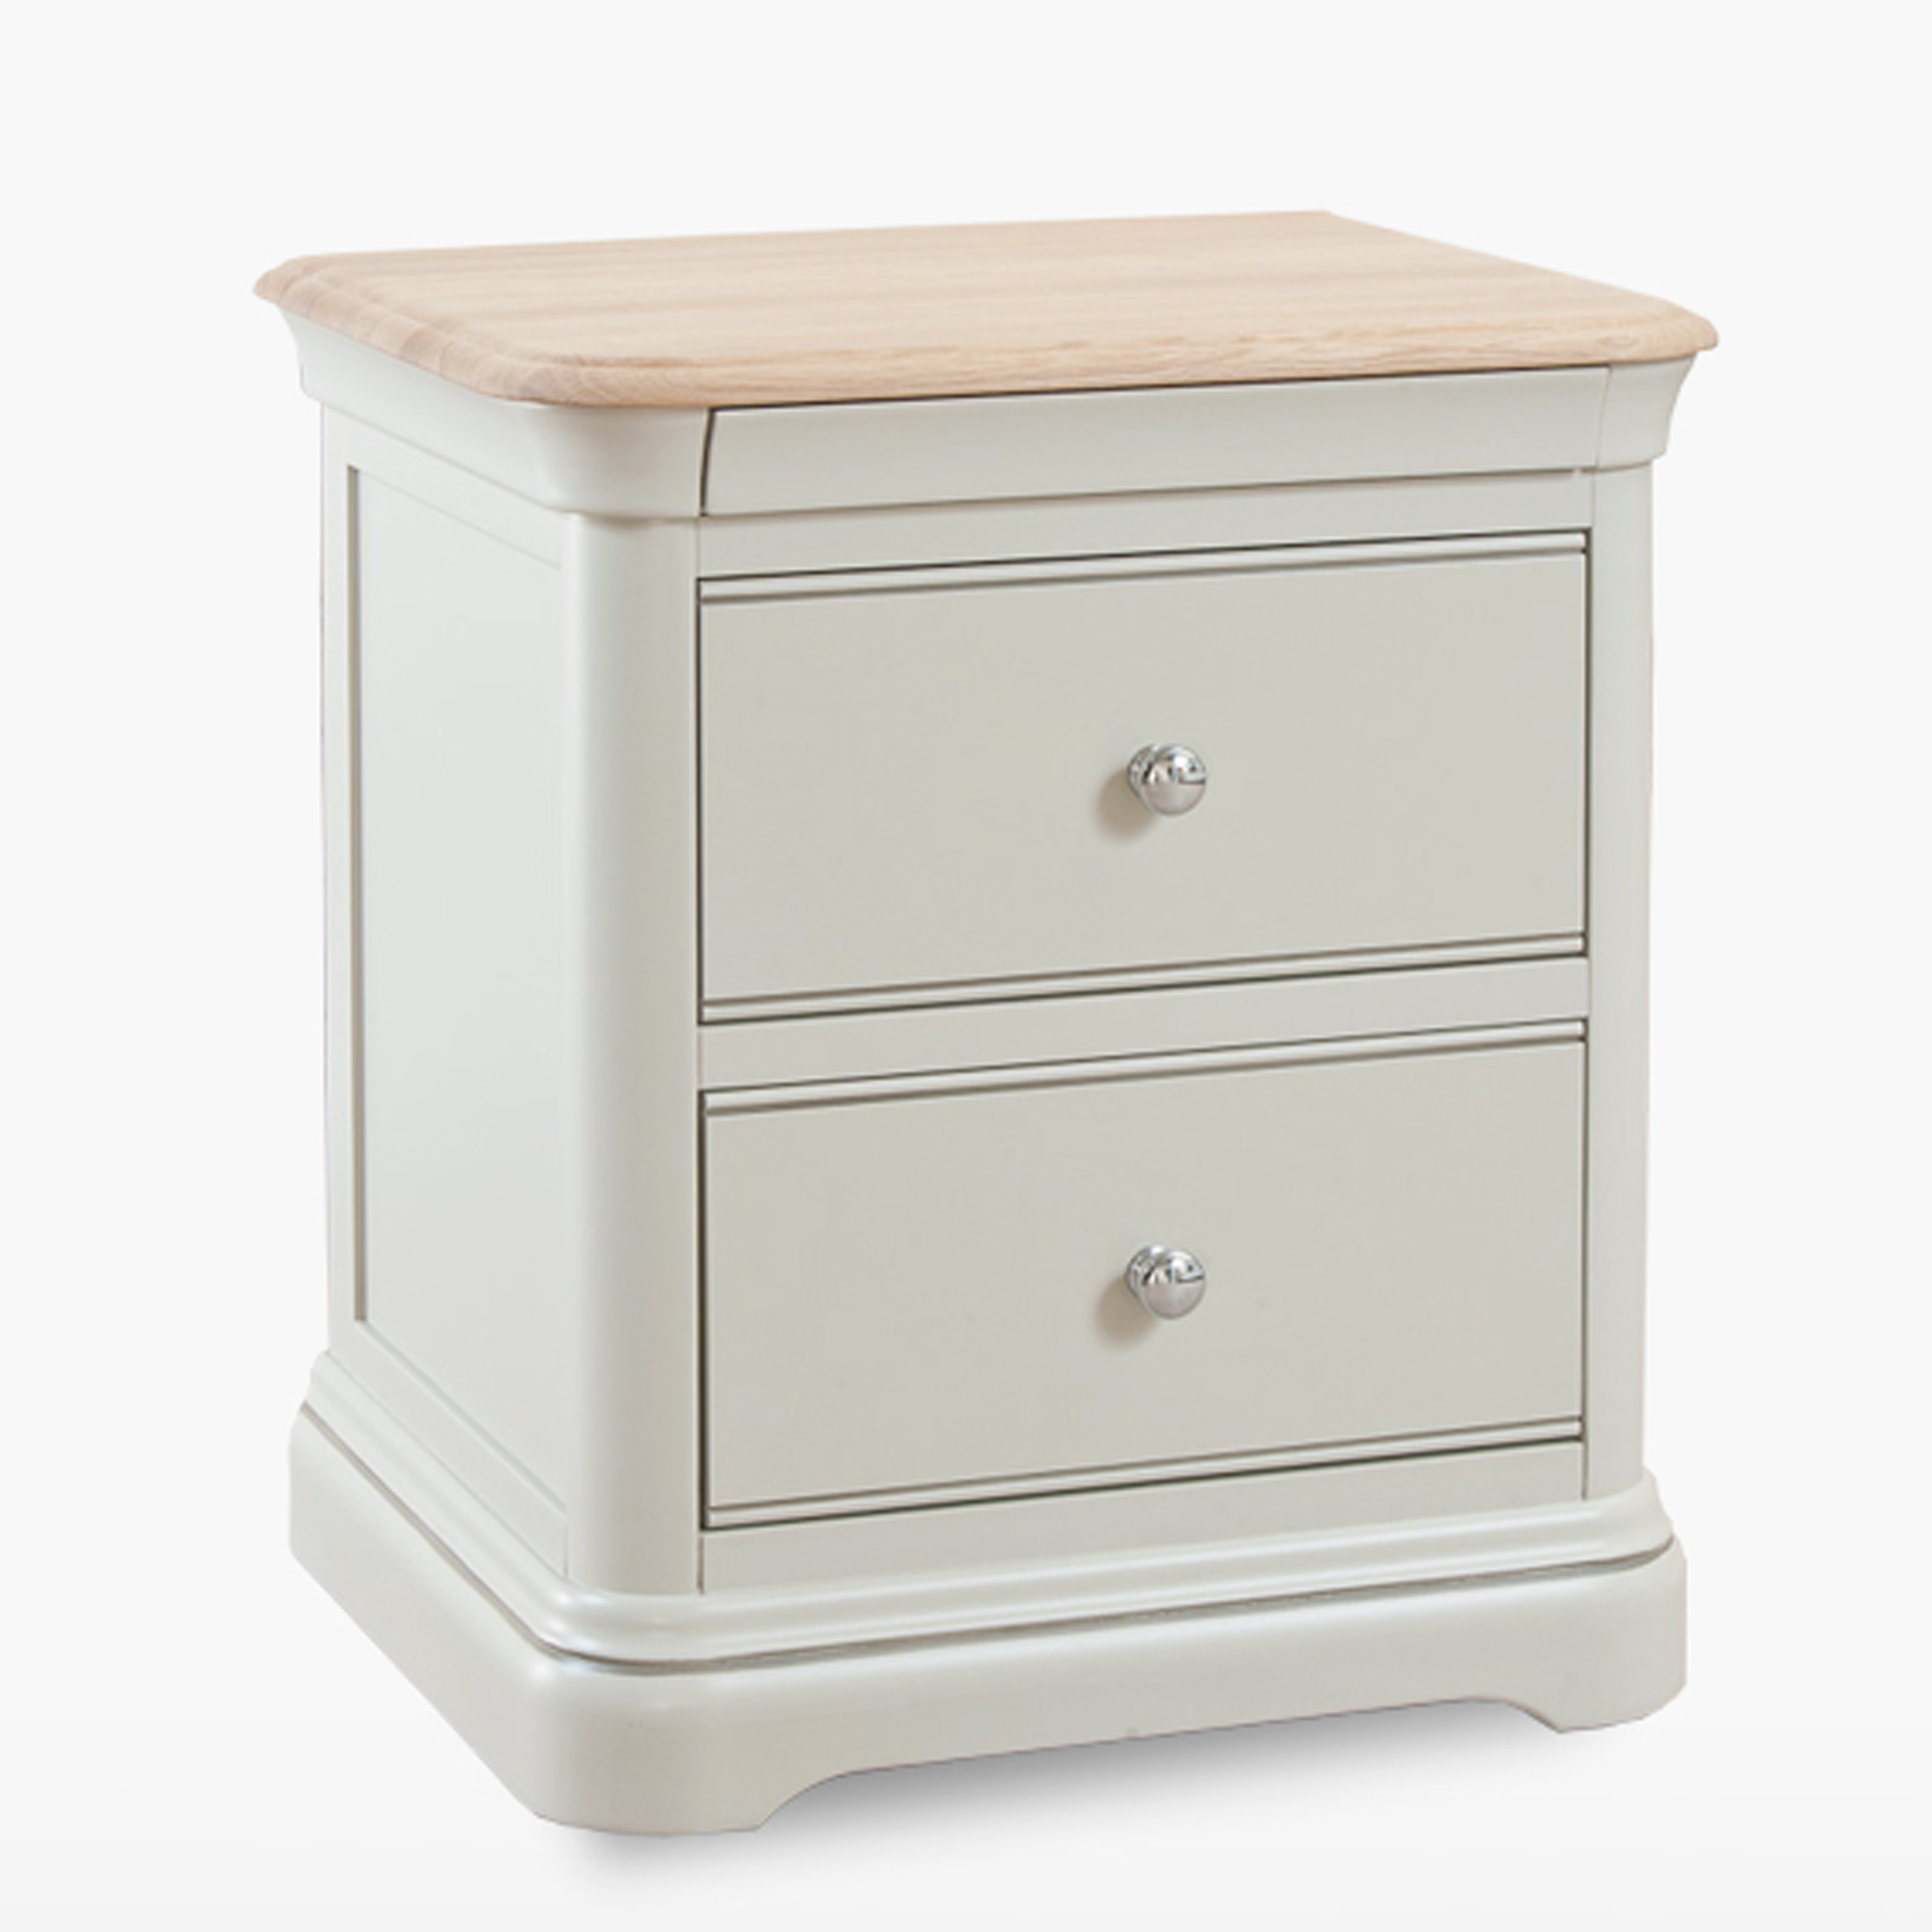 Cromer Large Two Drawer Bedside